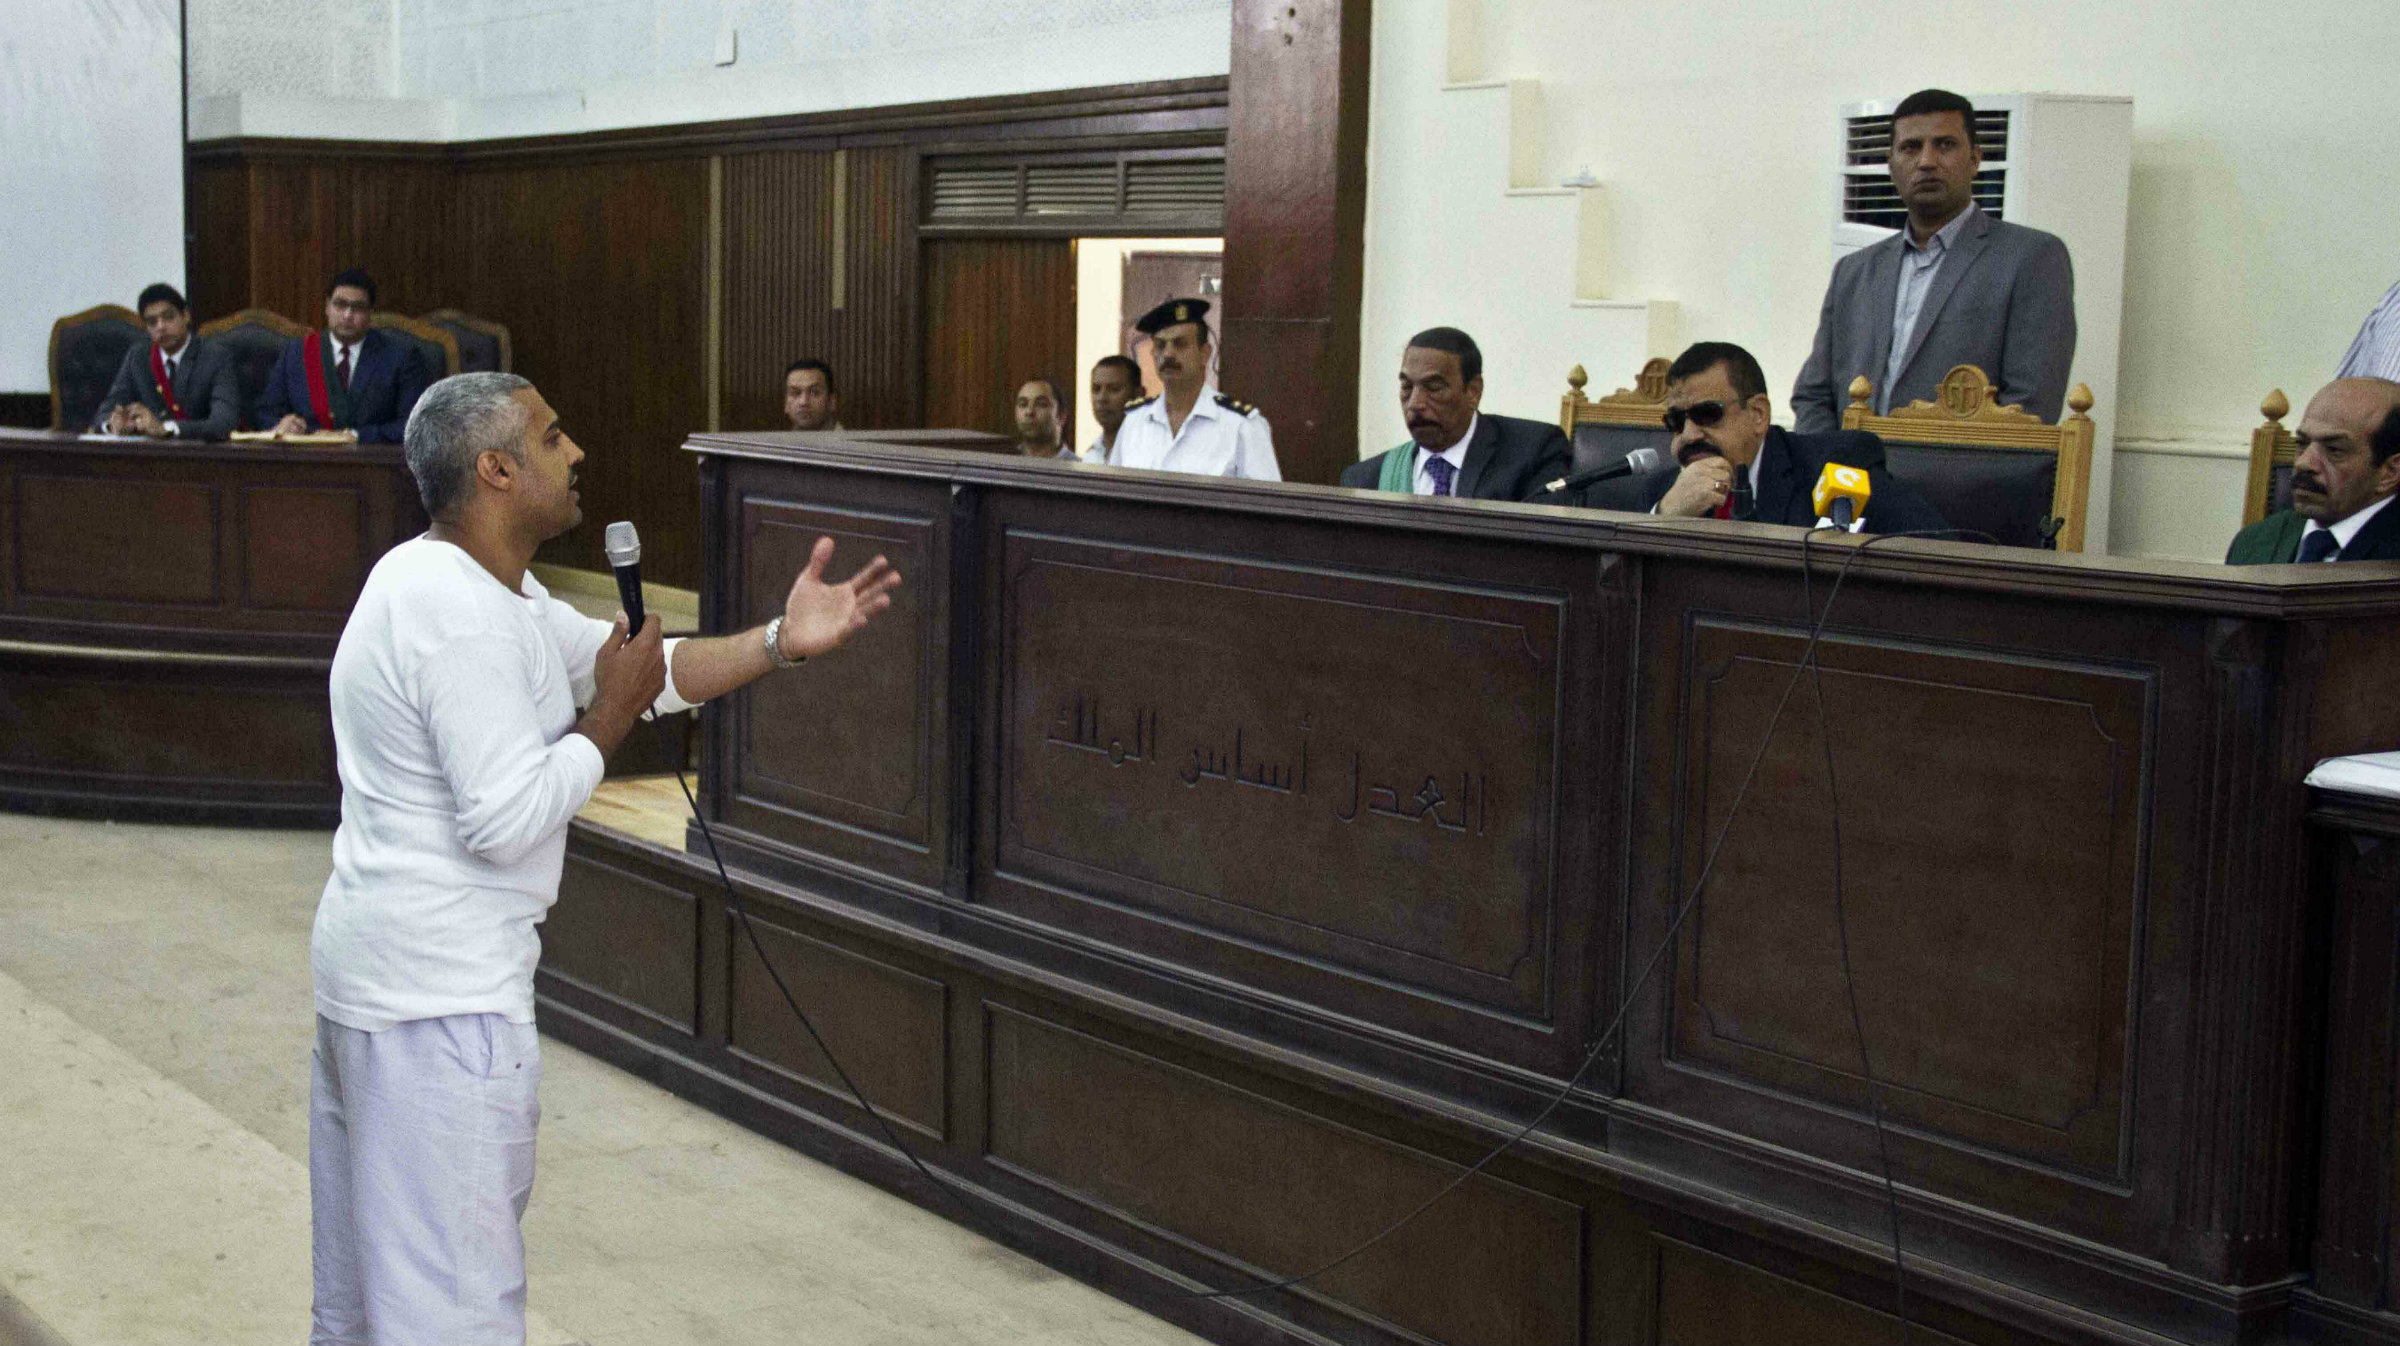 Al Jazeera defendant talks to the judge.